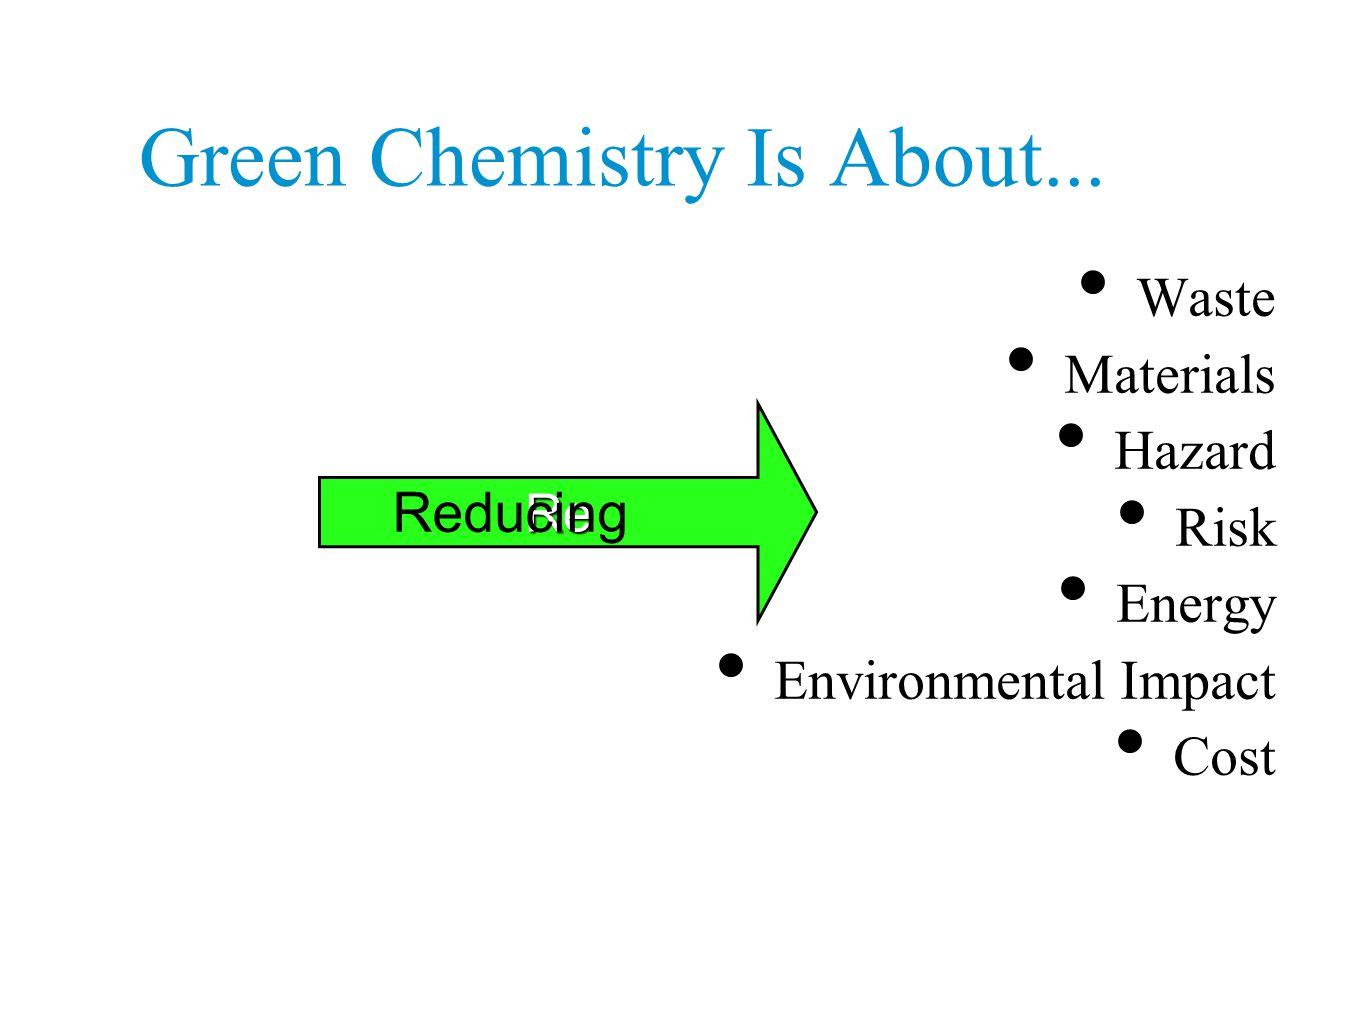 Green Chemistry Is About...